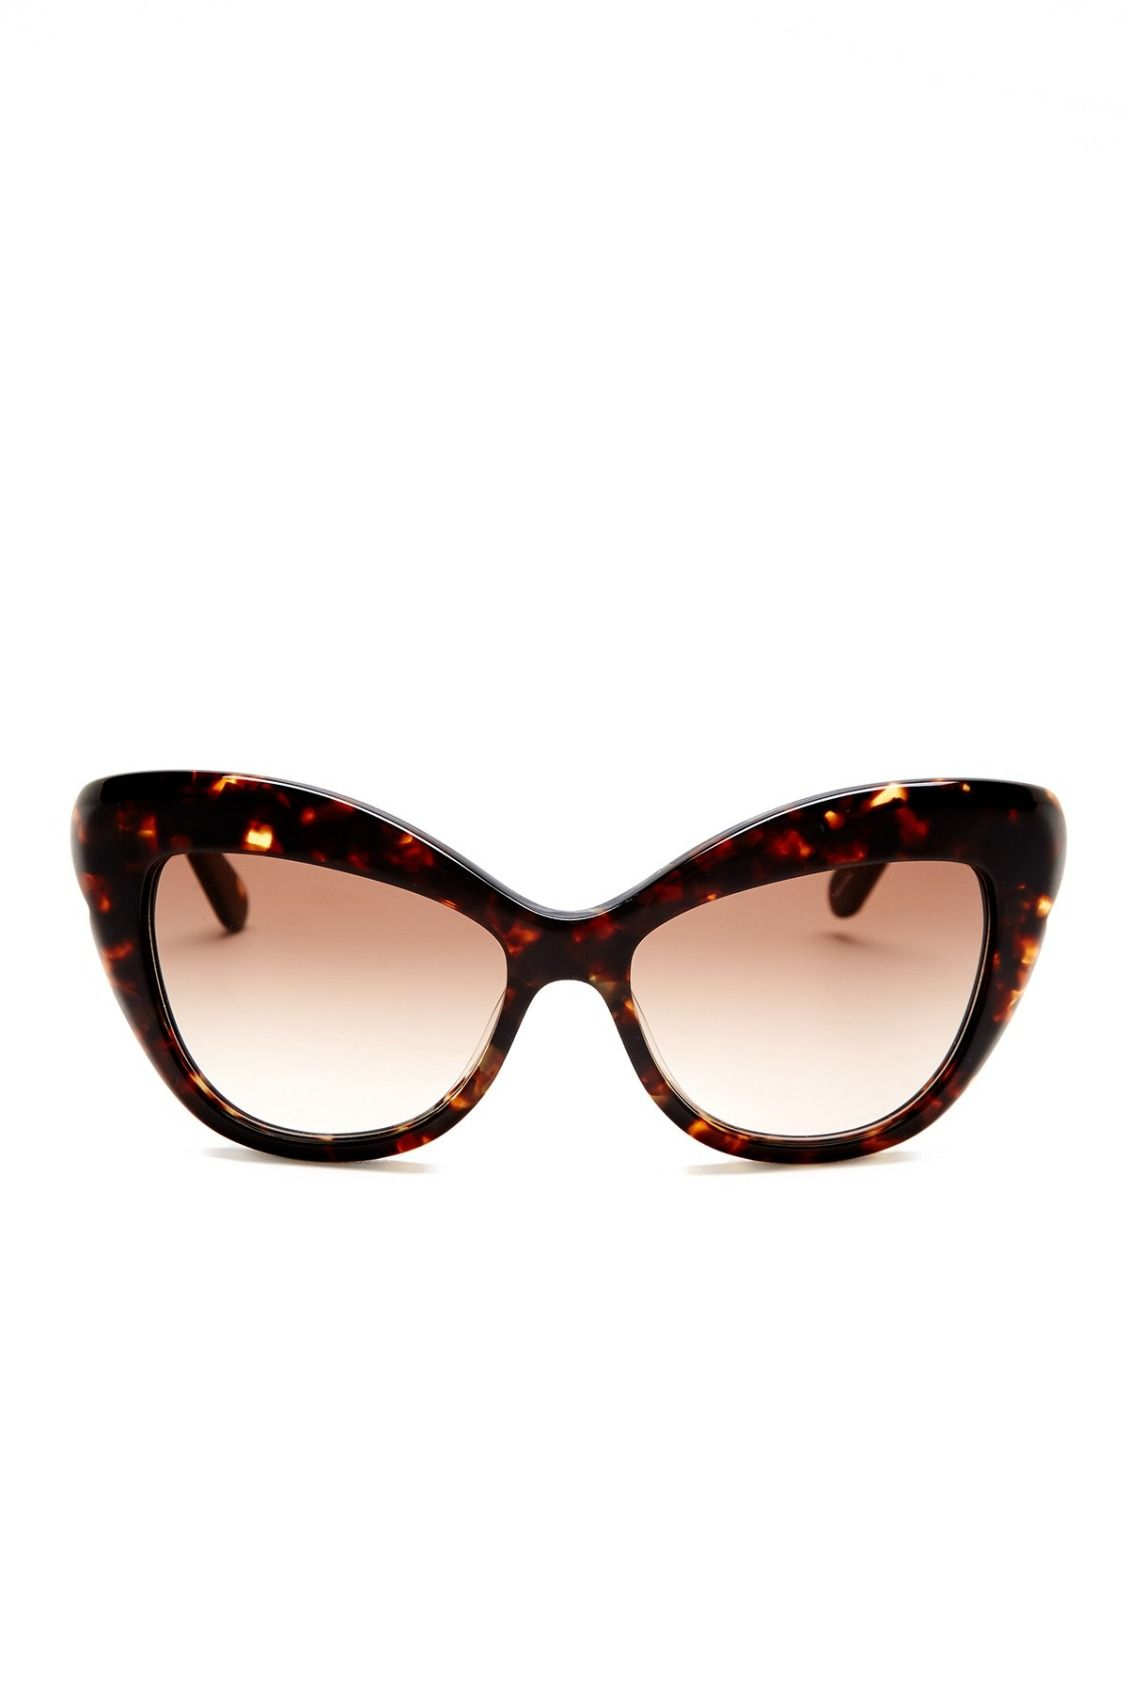 kate spade new york Women\'s Odelia Sunglasses | Gifts Galore | Pinterest